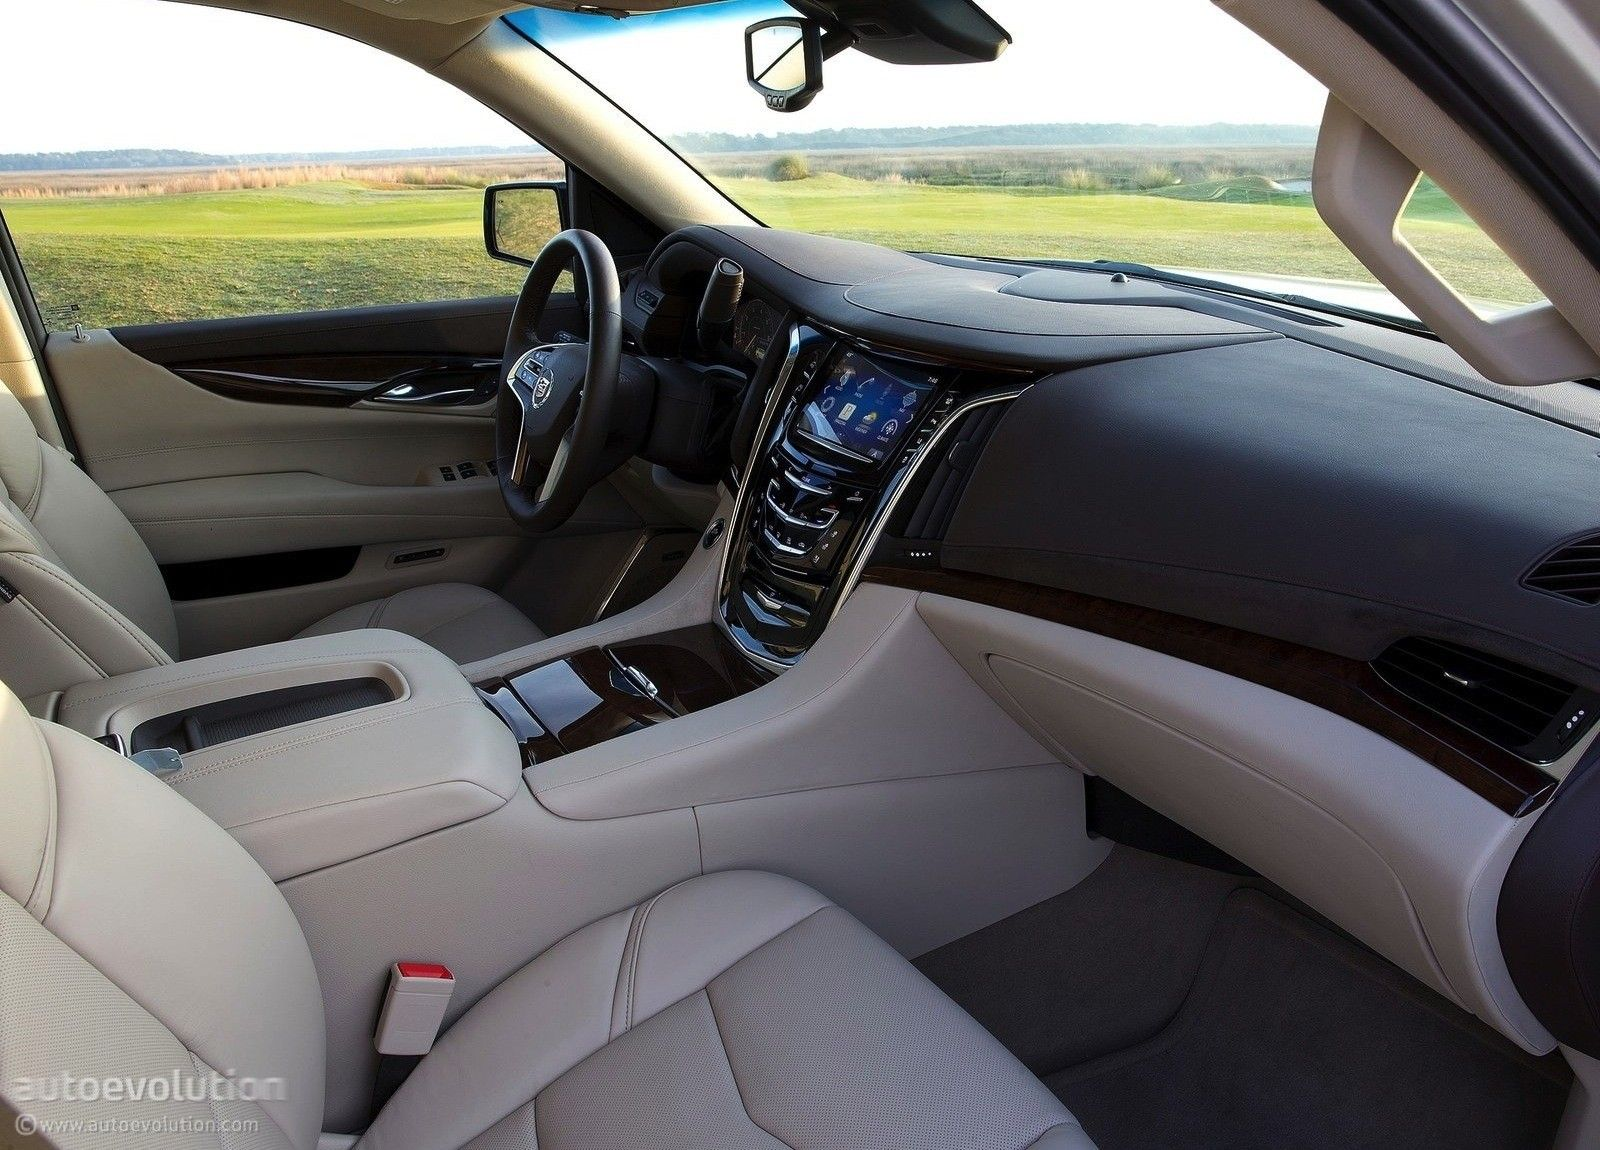 View 2015 cadillac escalade escalade esv photos from car and driver find high resolution car images in our photo gallery archive